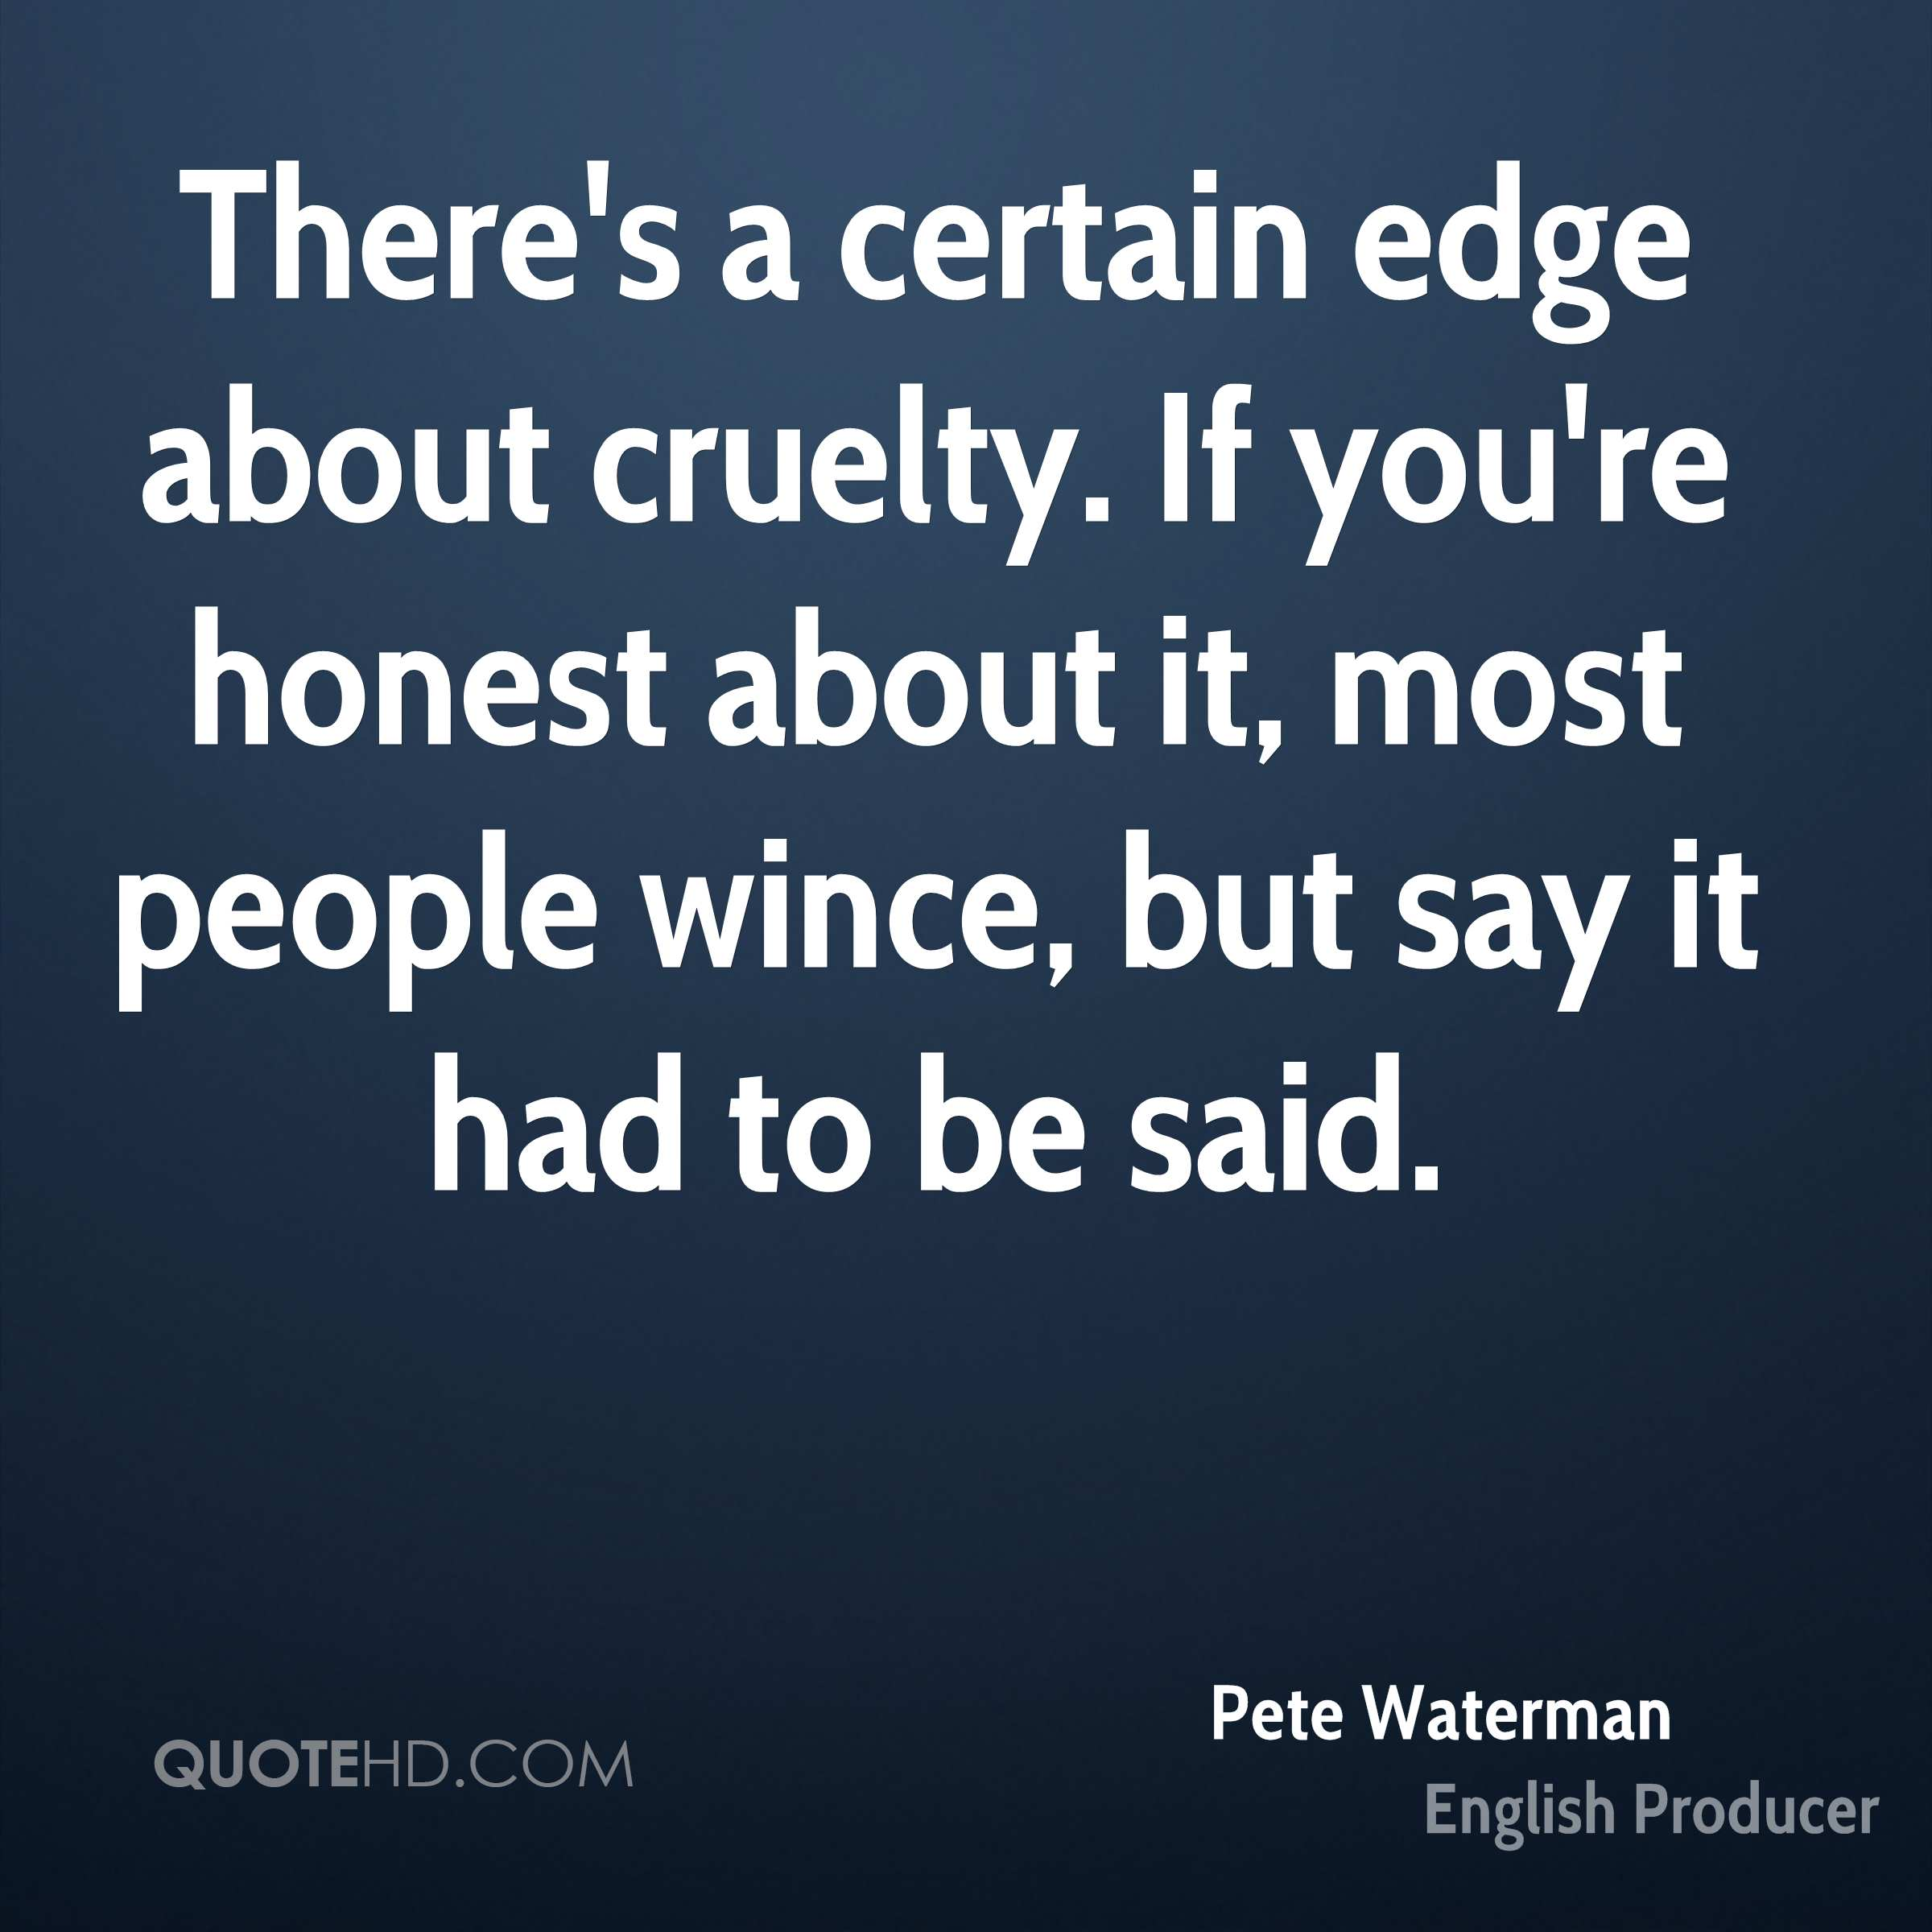 There's a certain edge about cruelty. If you're honest about it, most people wince, but say it had to be said.